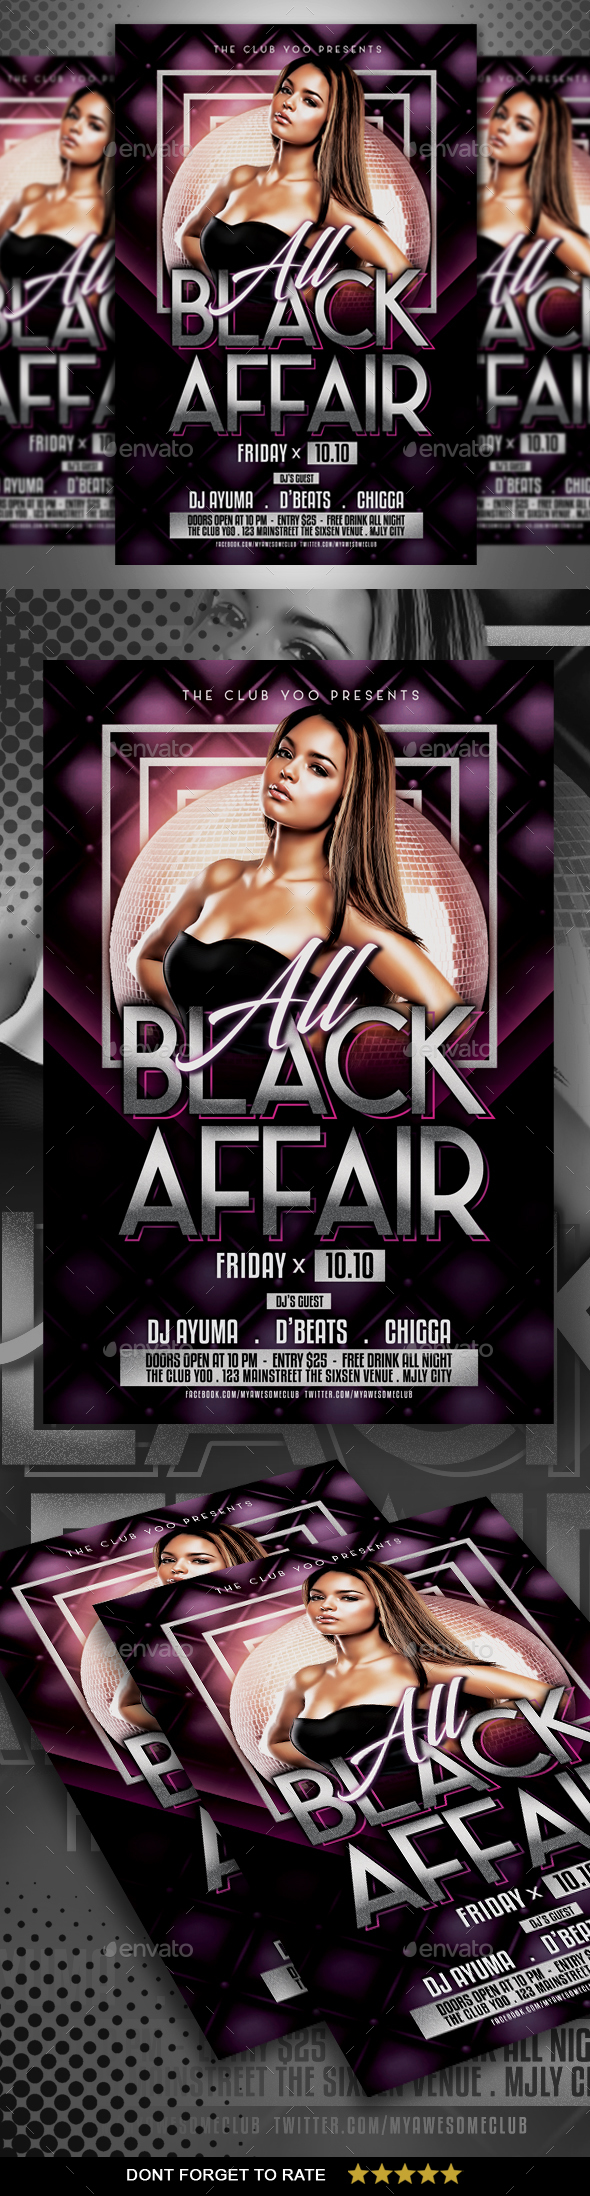 Black Affair Flyer - Clubs & Parties Events